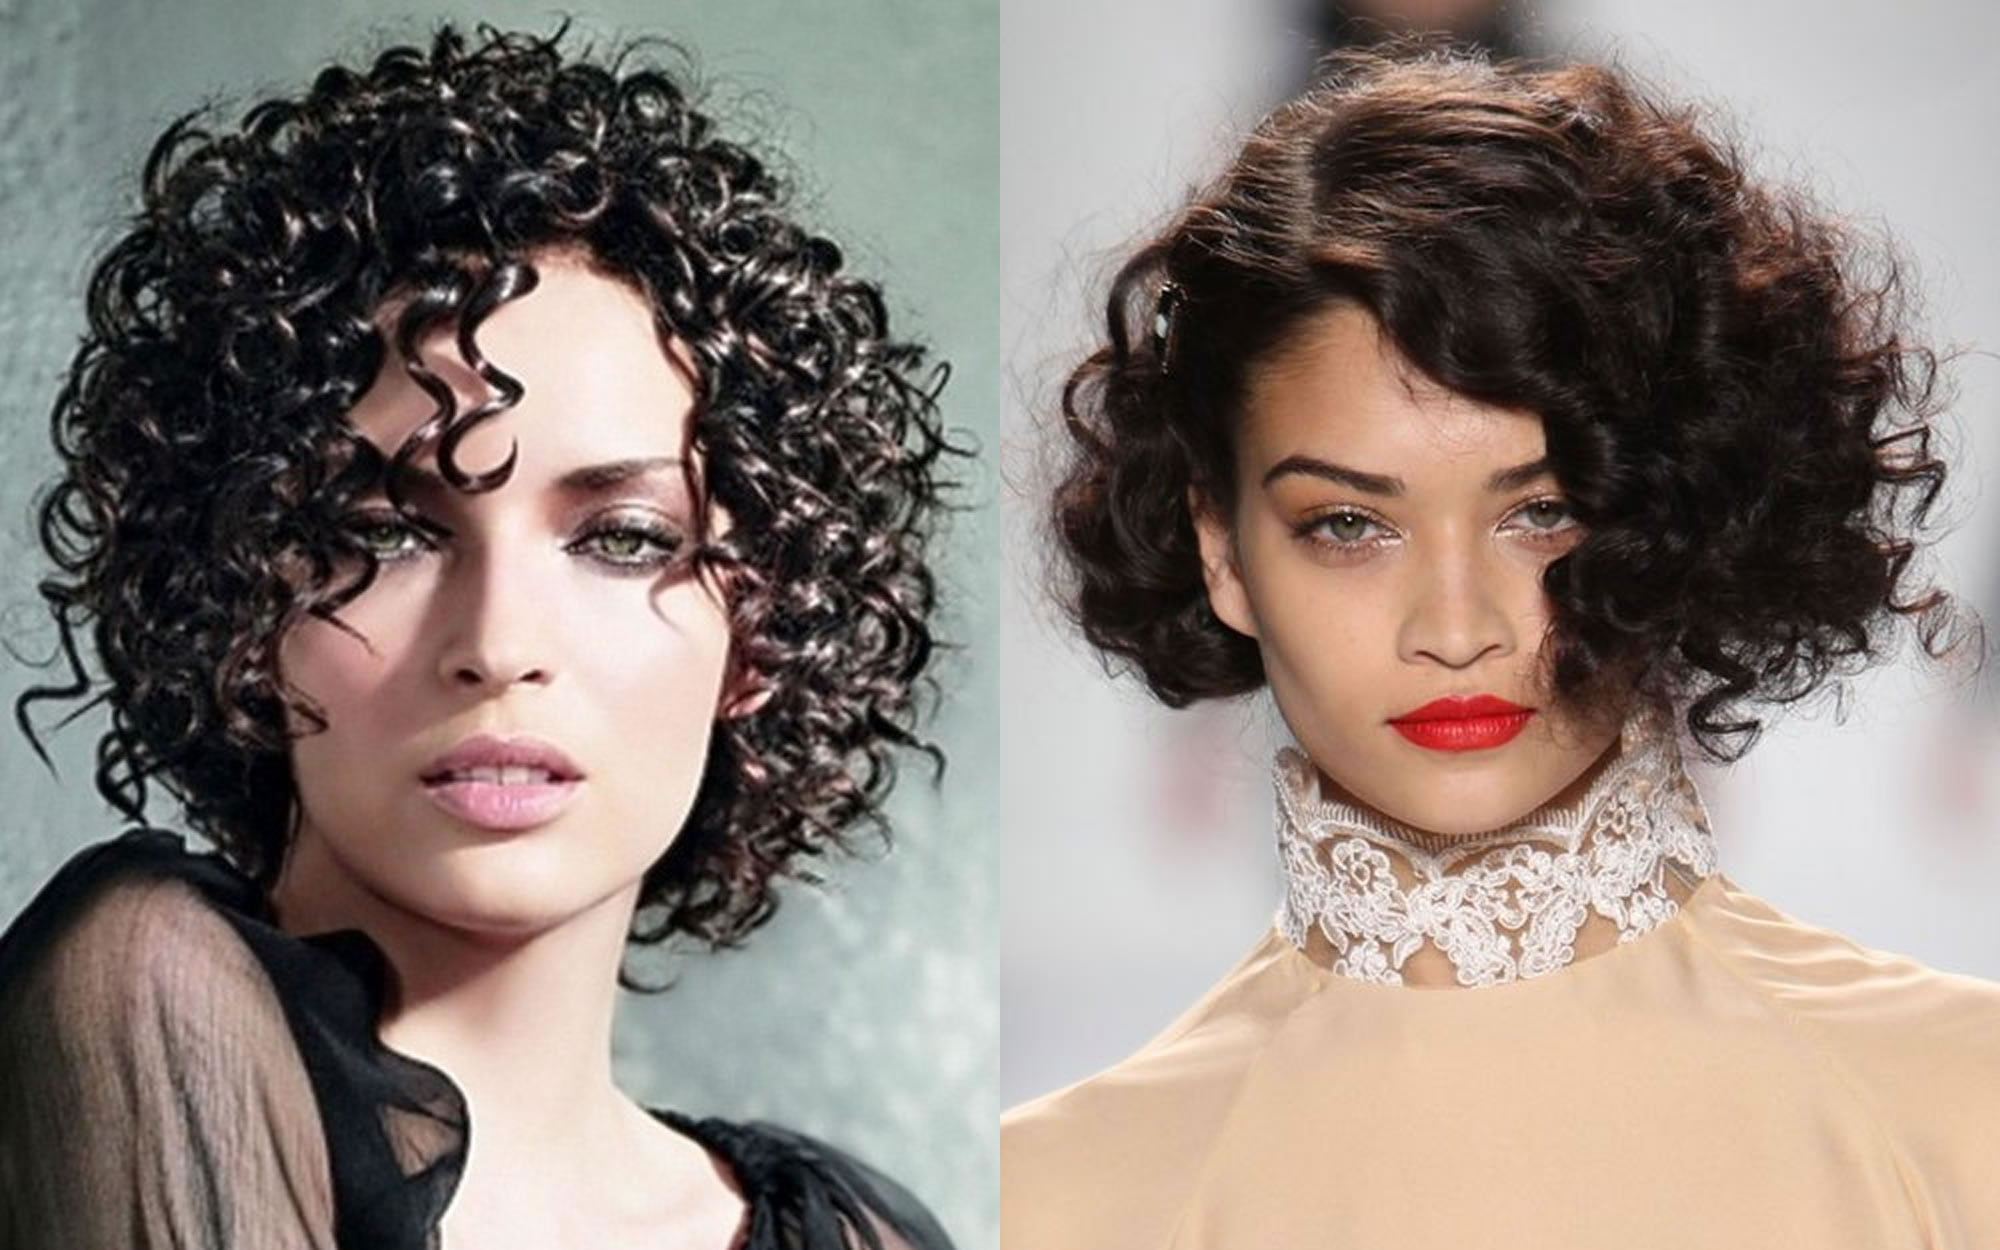 Short Hairstyles 2019 Curly: Curly Hairstyles For Short Hair 2018-2019